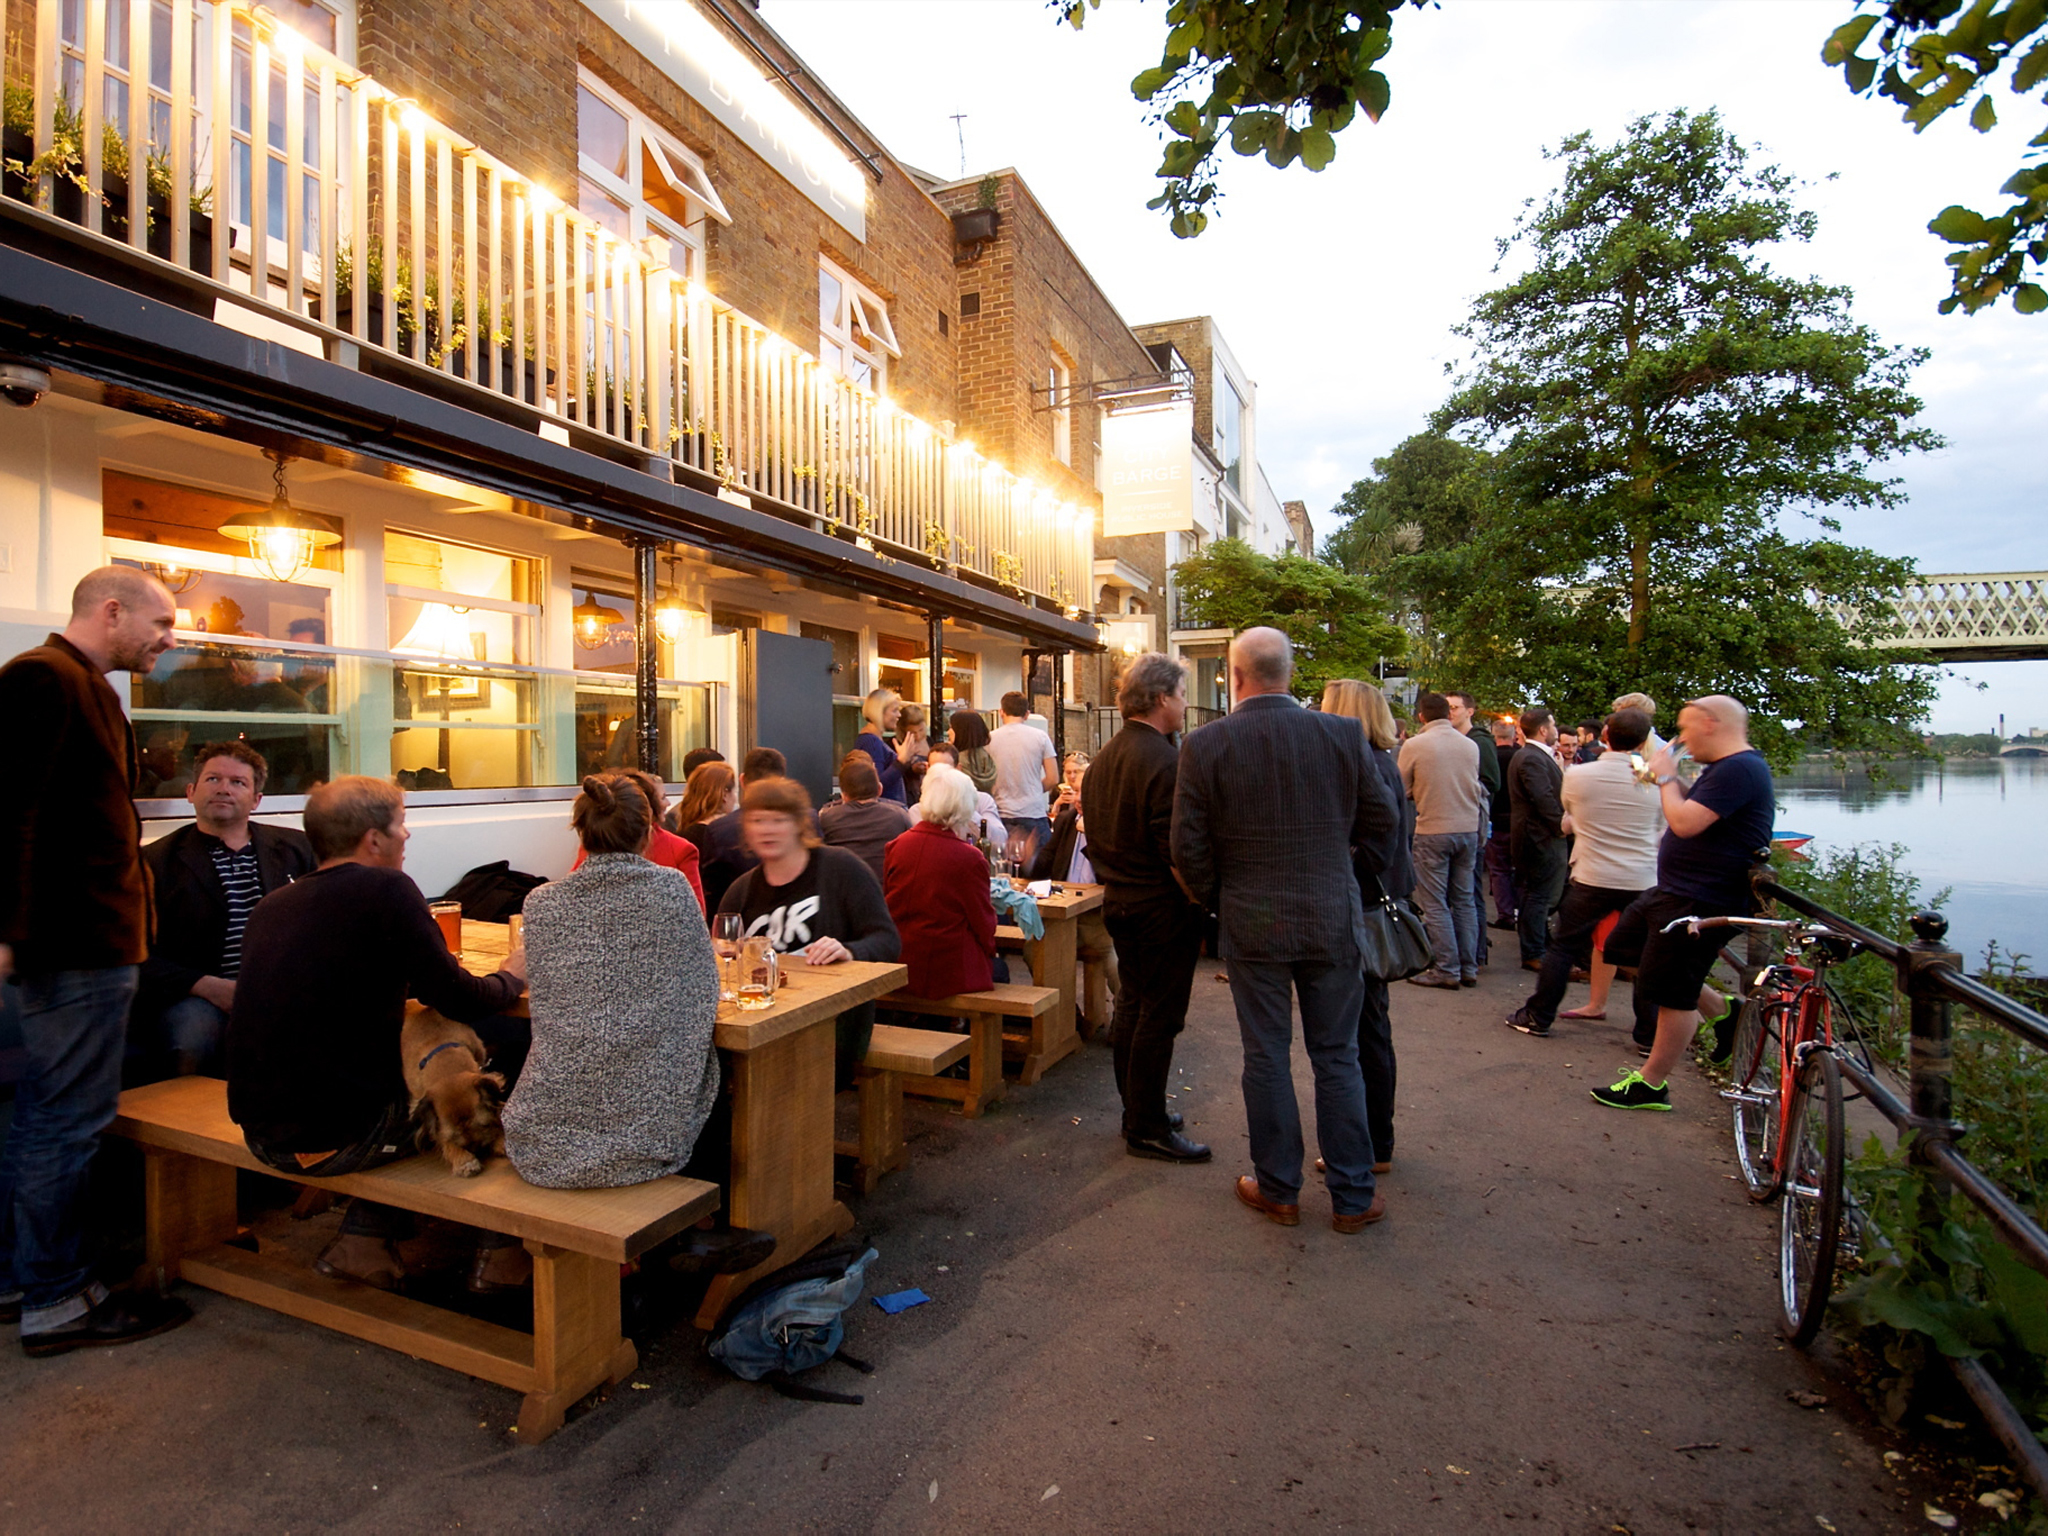 The 100 best bars and pubs in London - City Barge, Chiswick